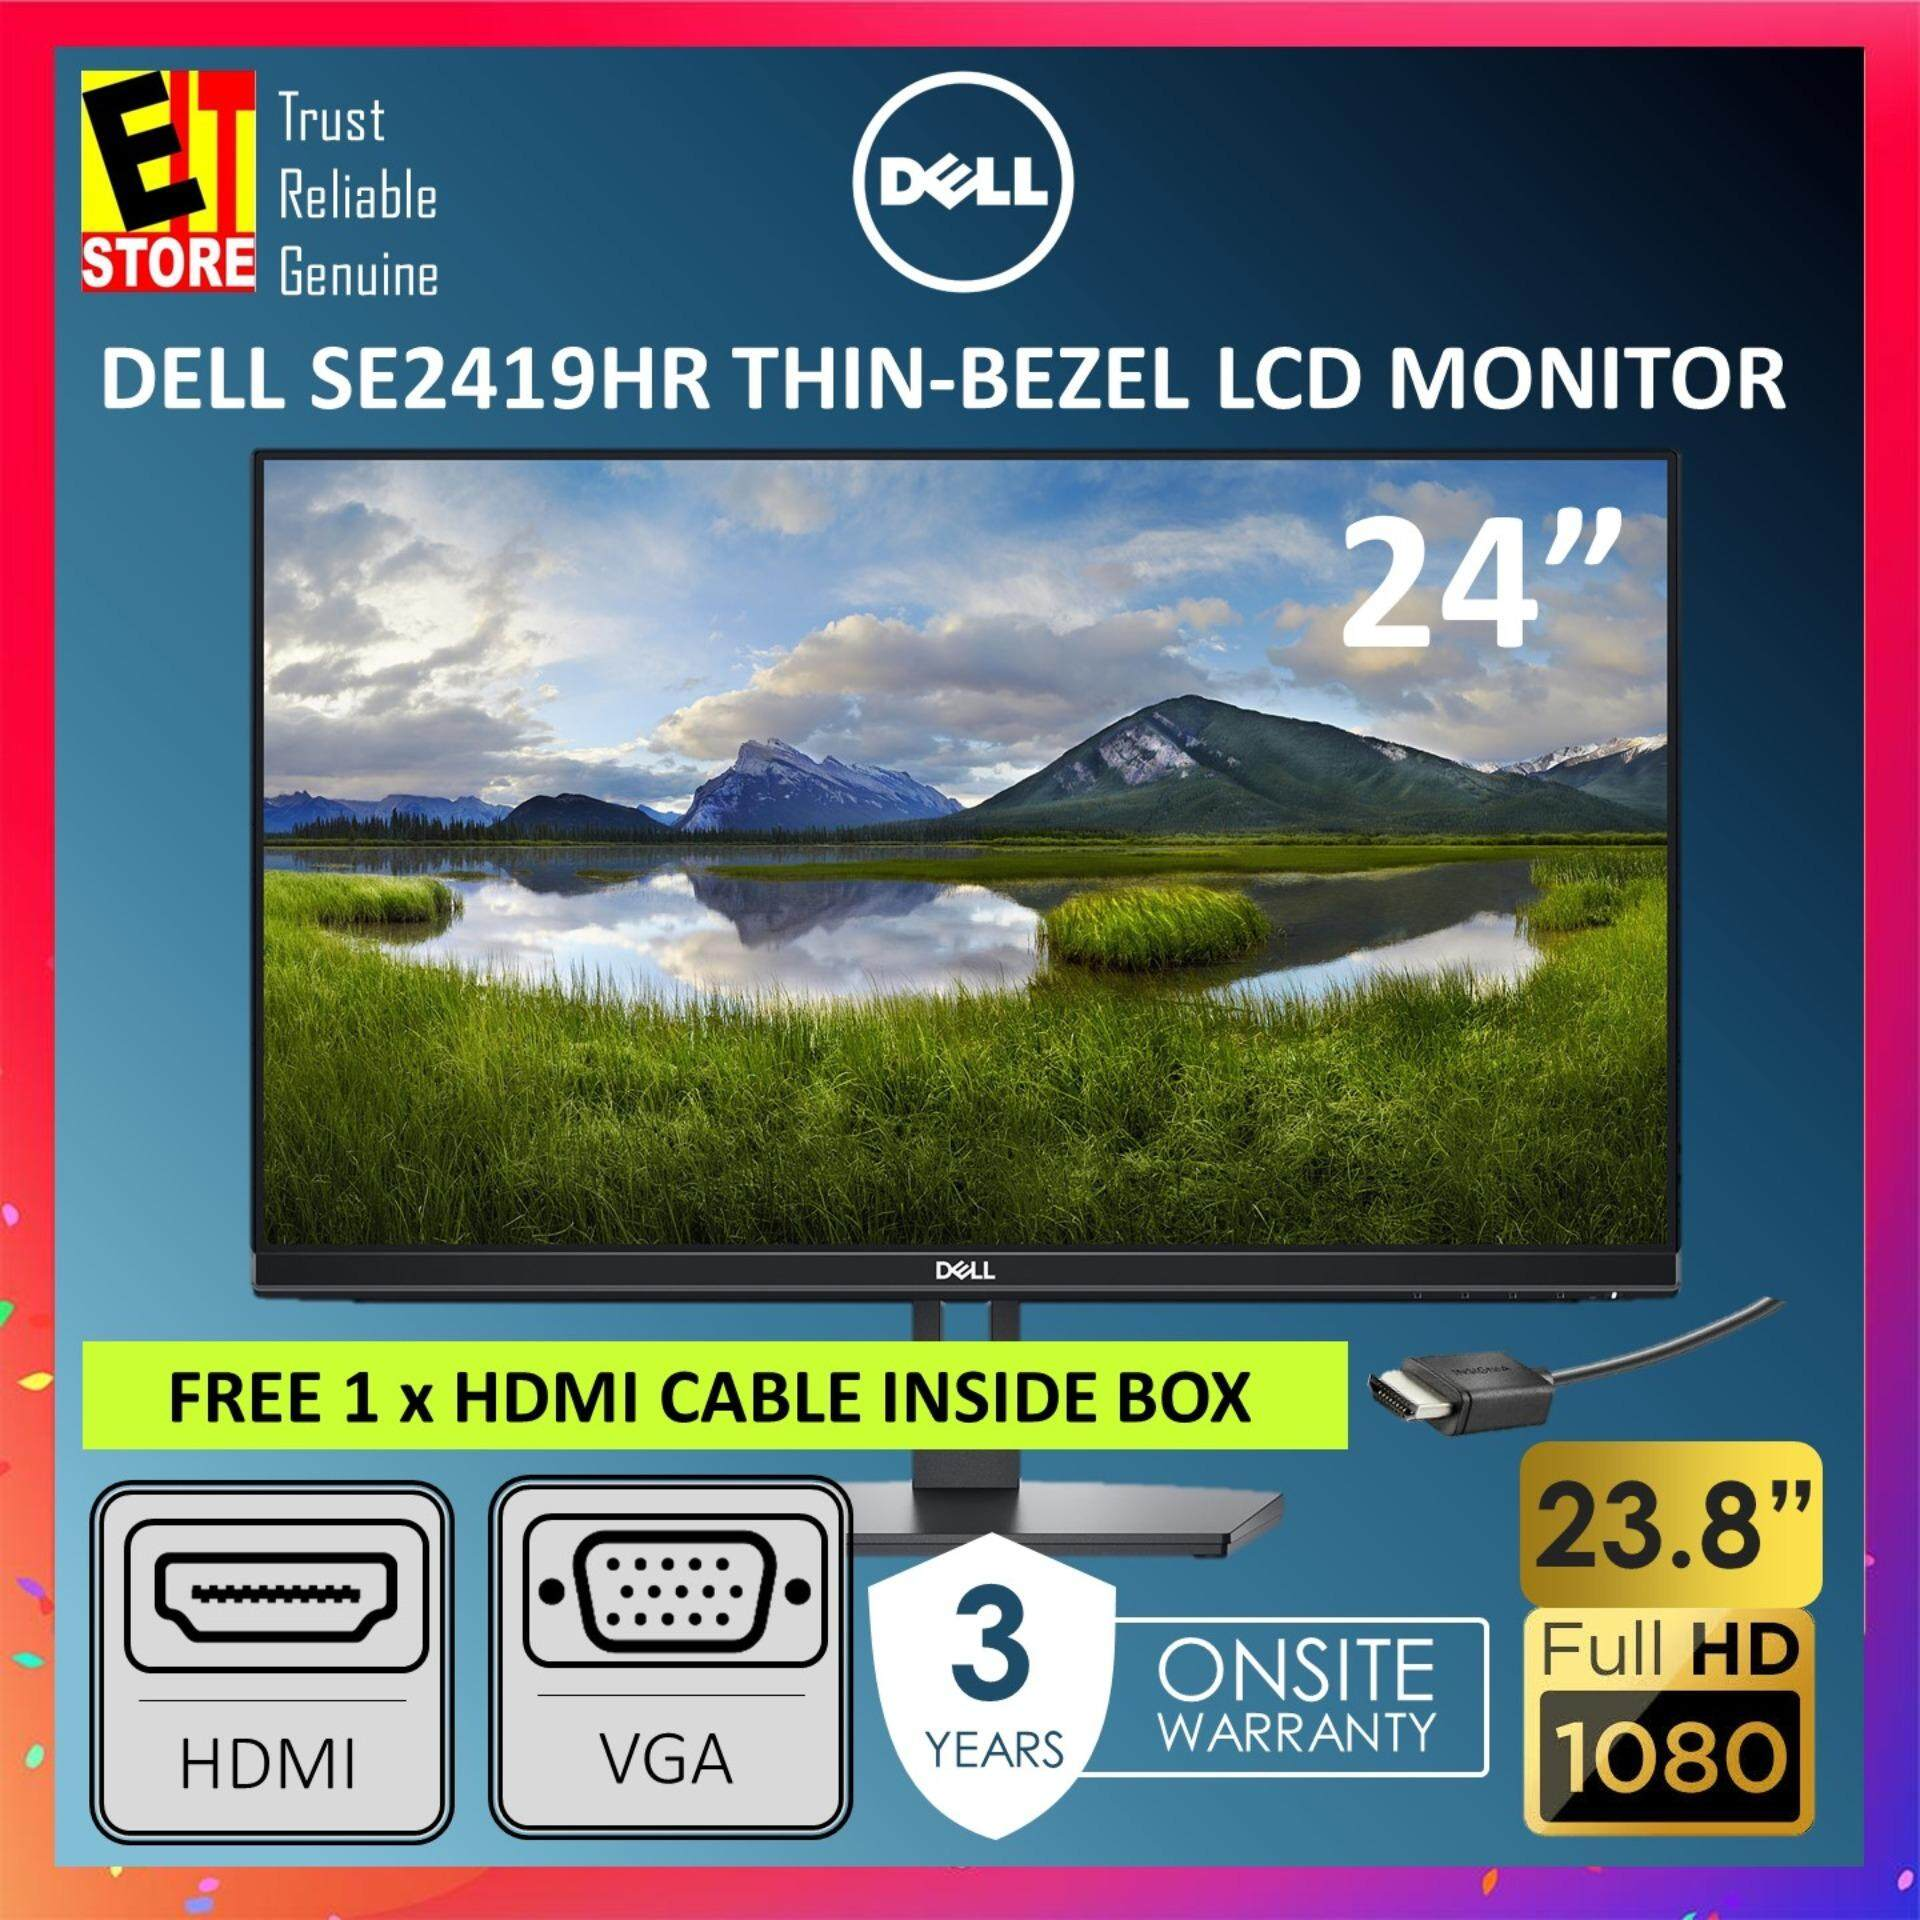 DELL SE2419HR 24  MONITOR  FULL HD 1080P IPS, THIN-BEZEL LCD MONITOR (HDMI,VGA,3YRS WARRANTY) Malaysia